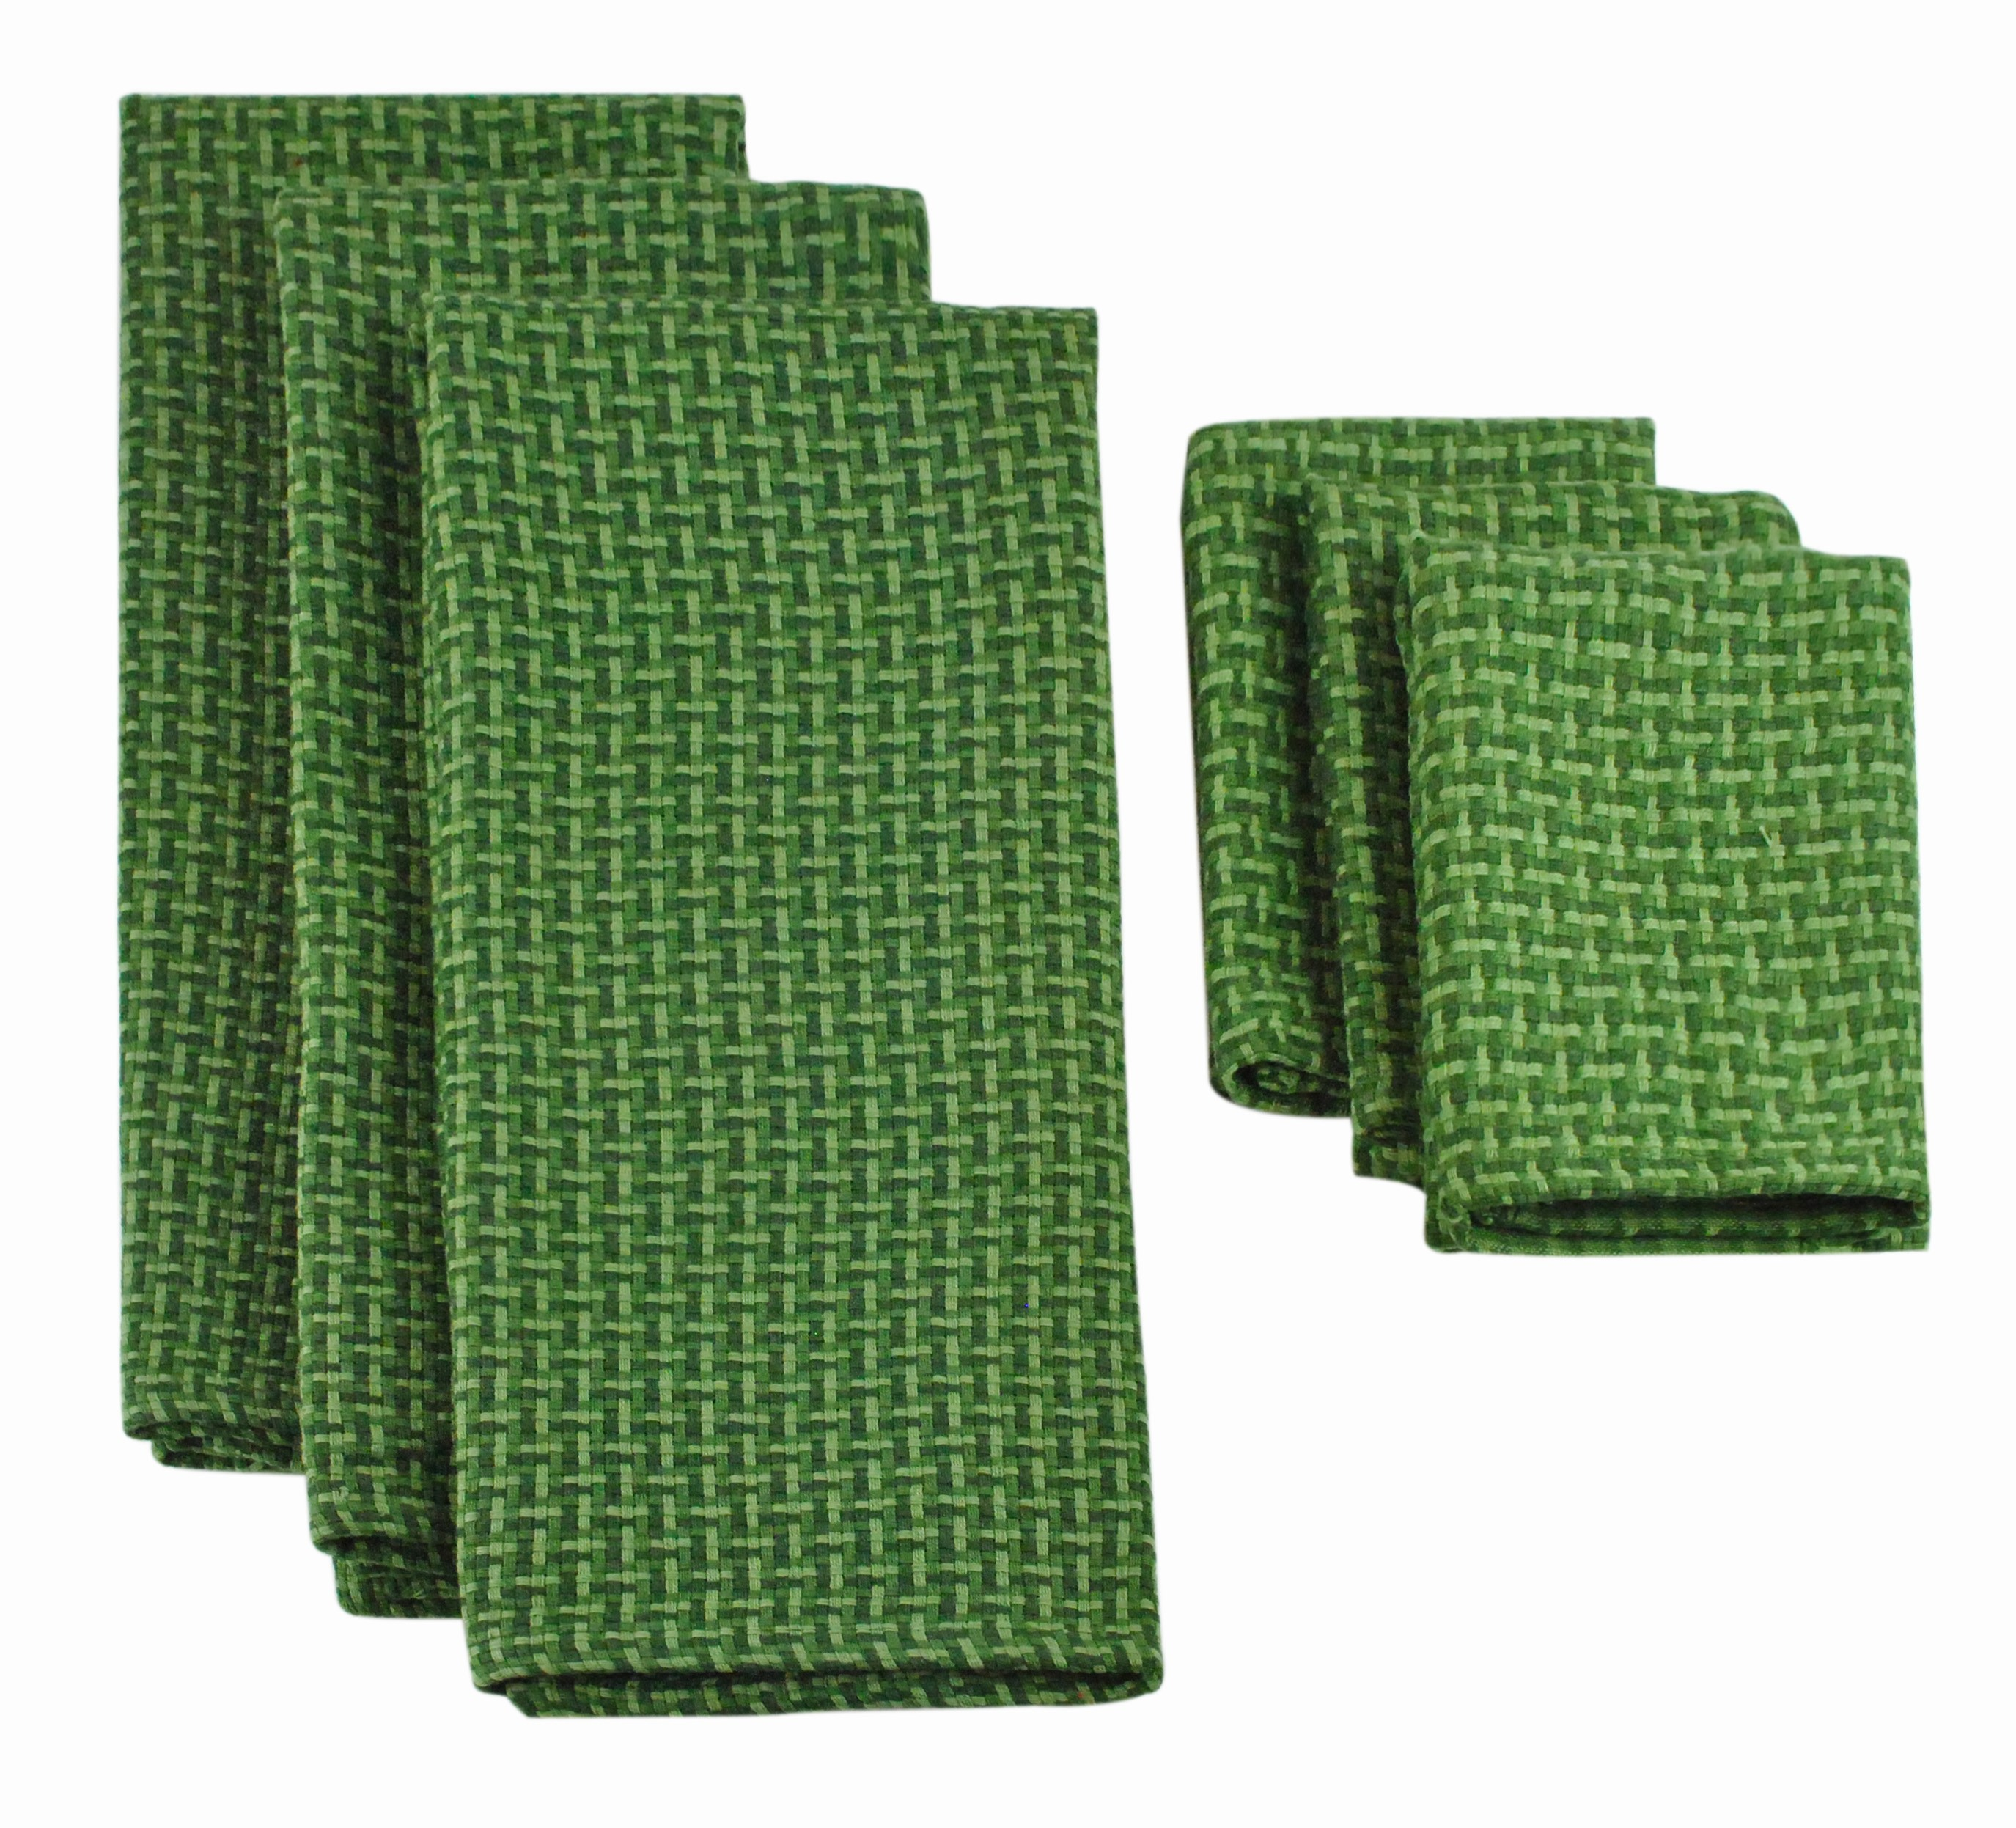 Design Imports Heavyweight Dishtowel and Dishcloth Set (3 Pieces), Vineyard Green